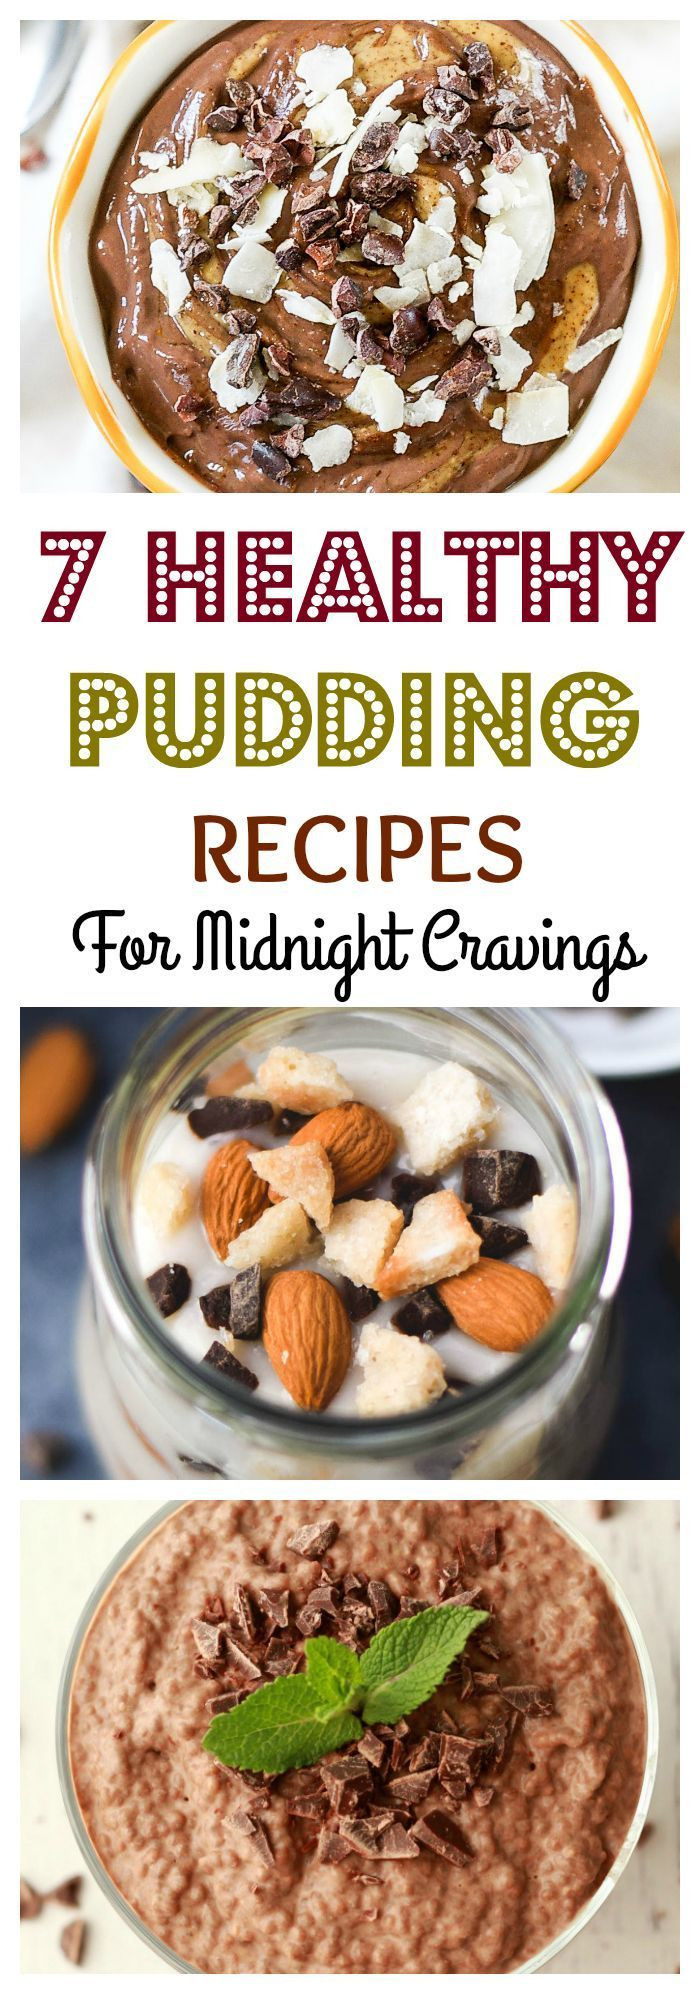 Midnight Healthy Snacks  Best 25 Healthy midnight snacks ideas on Pinterest